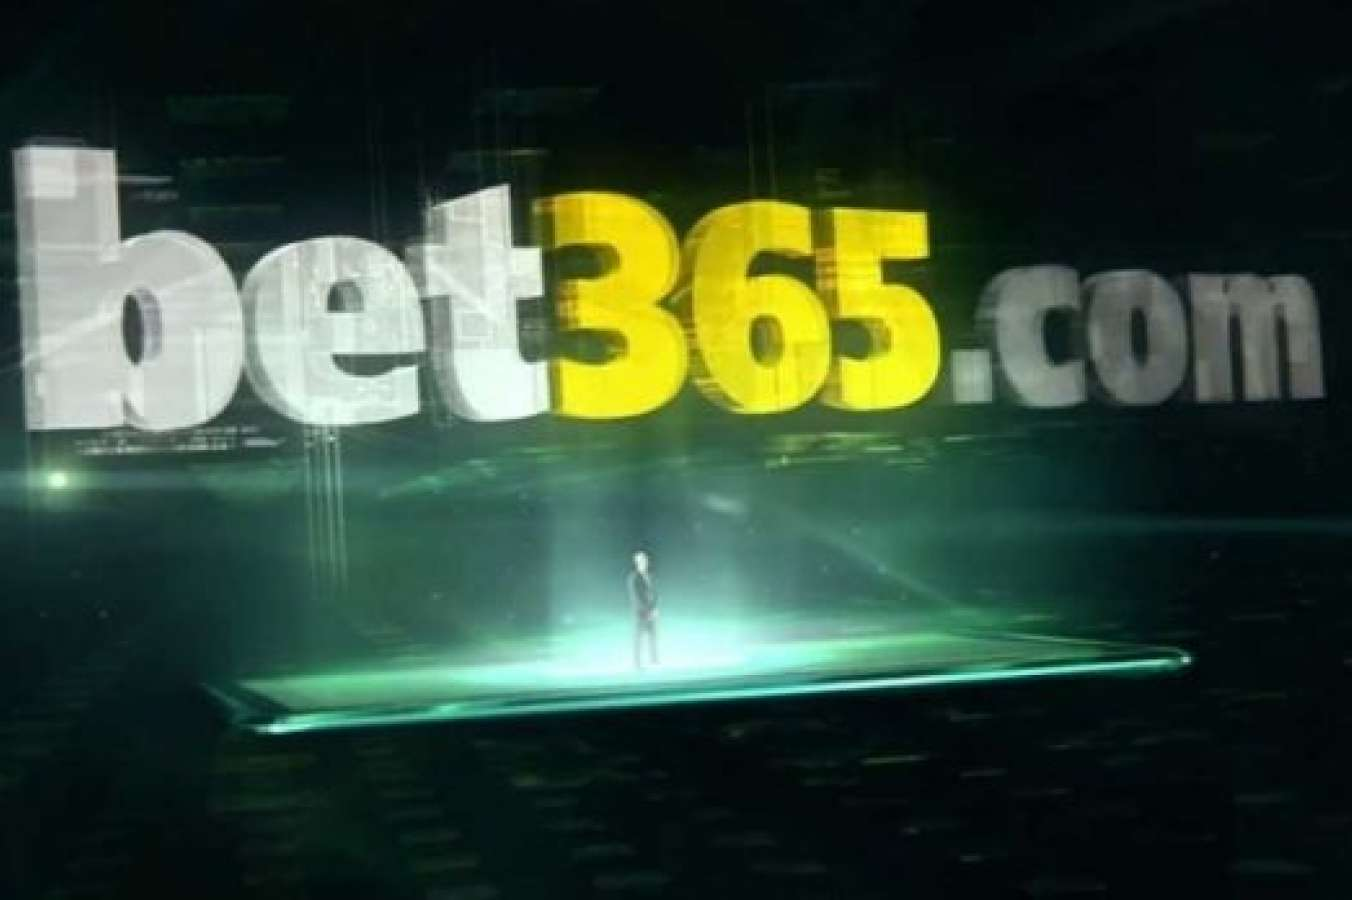 Bet365 Under Fire From Punters